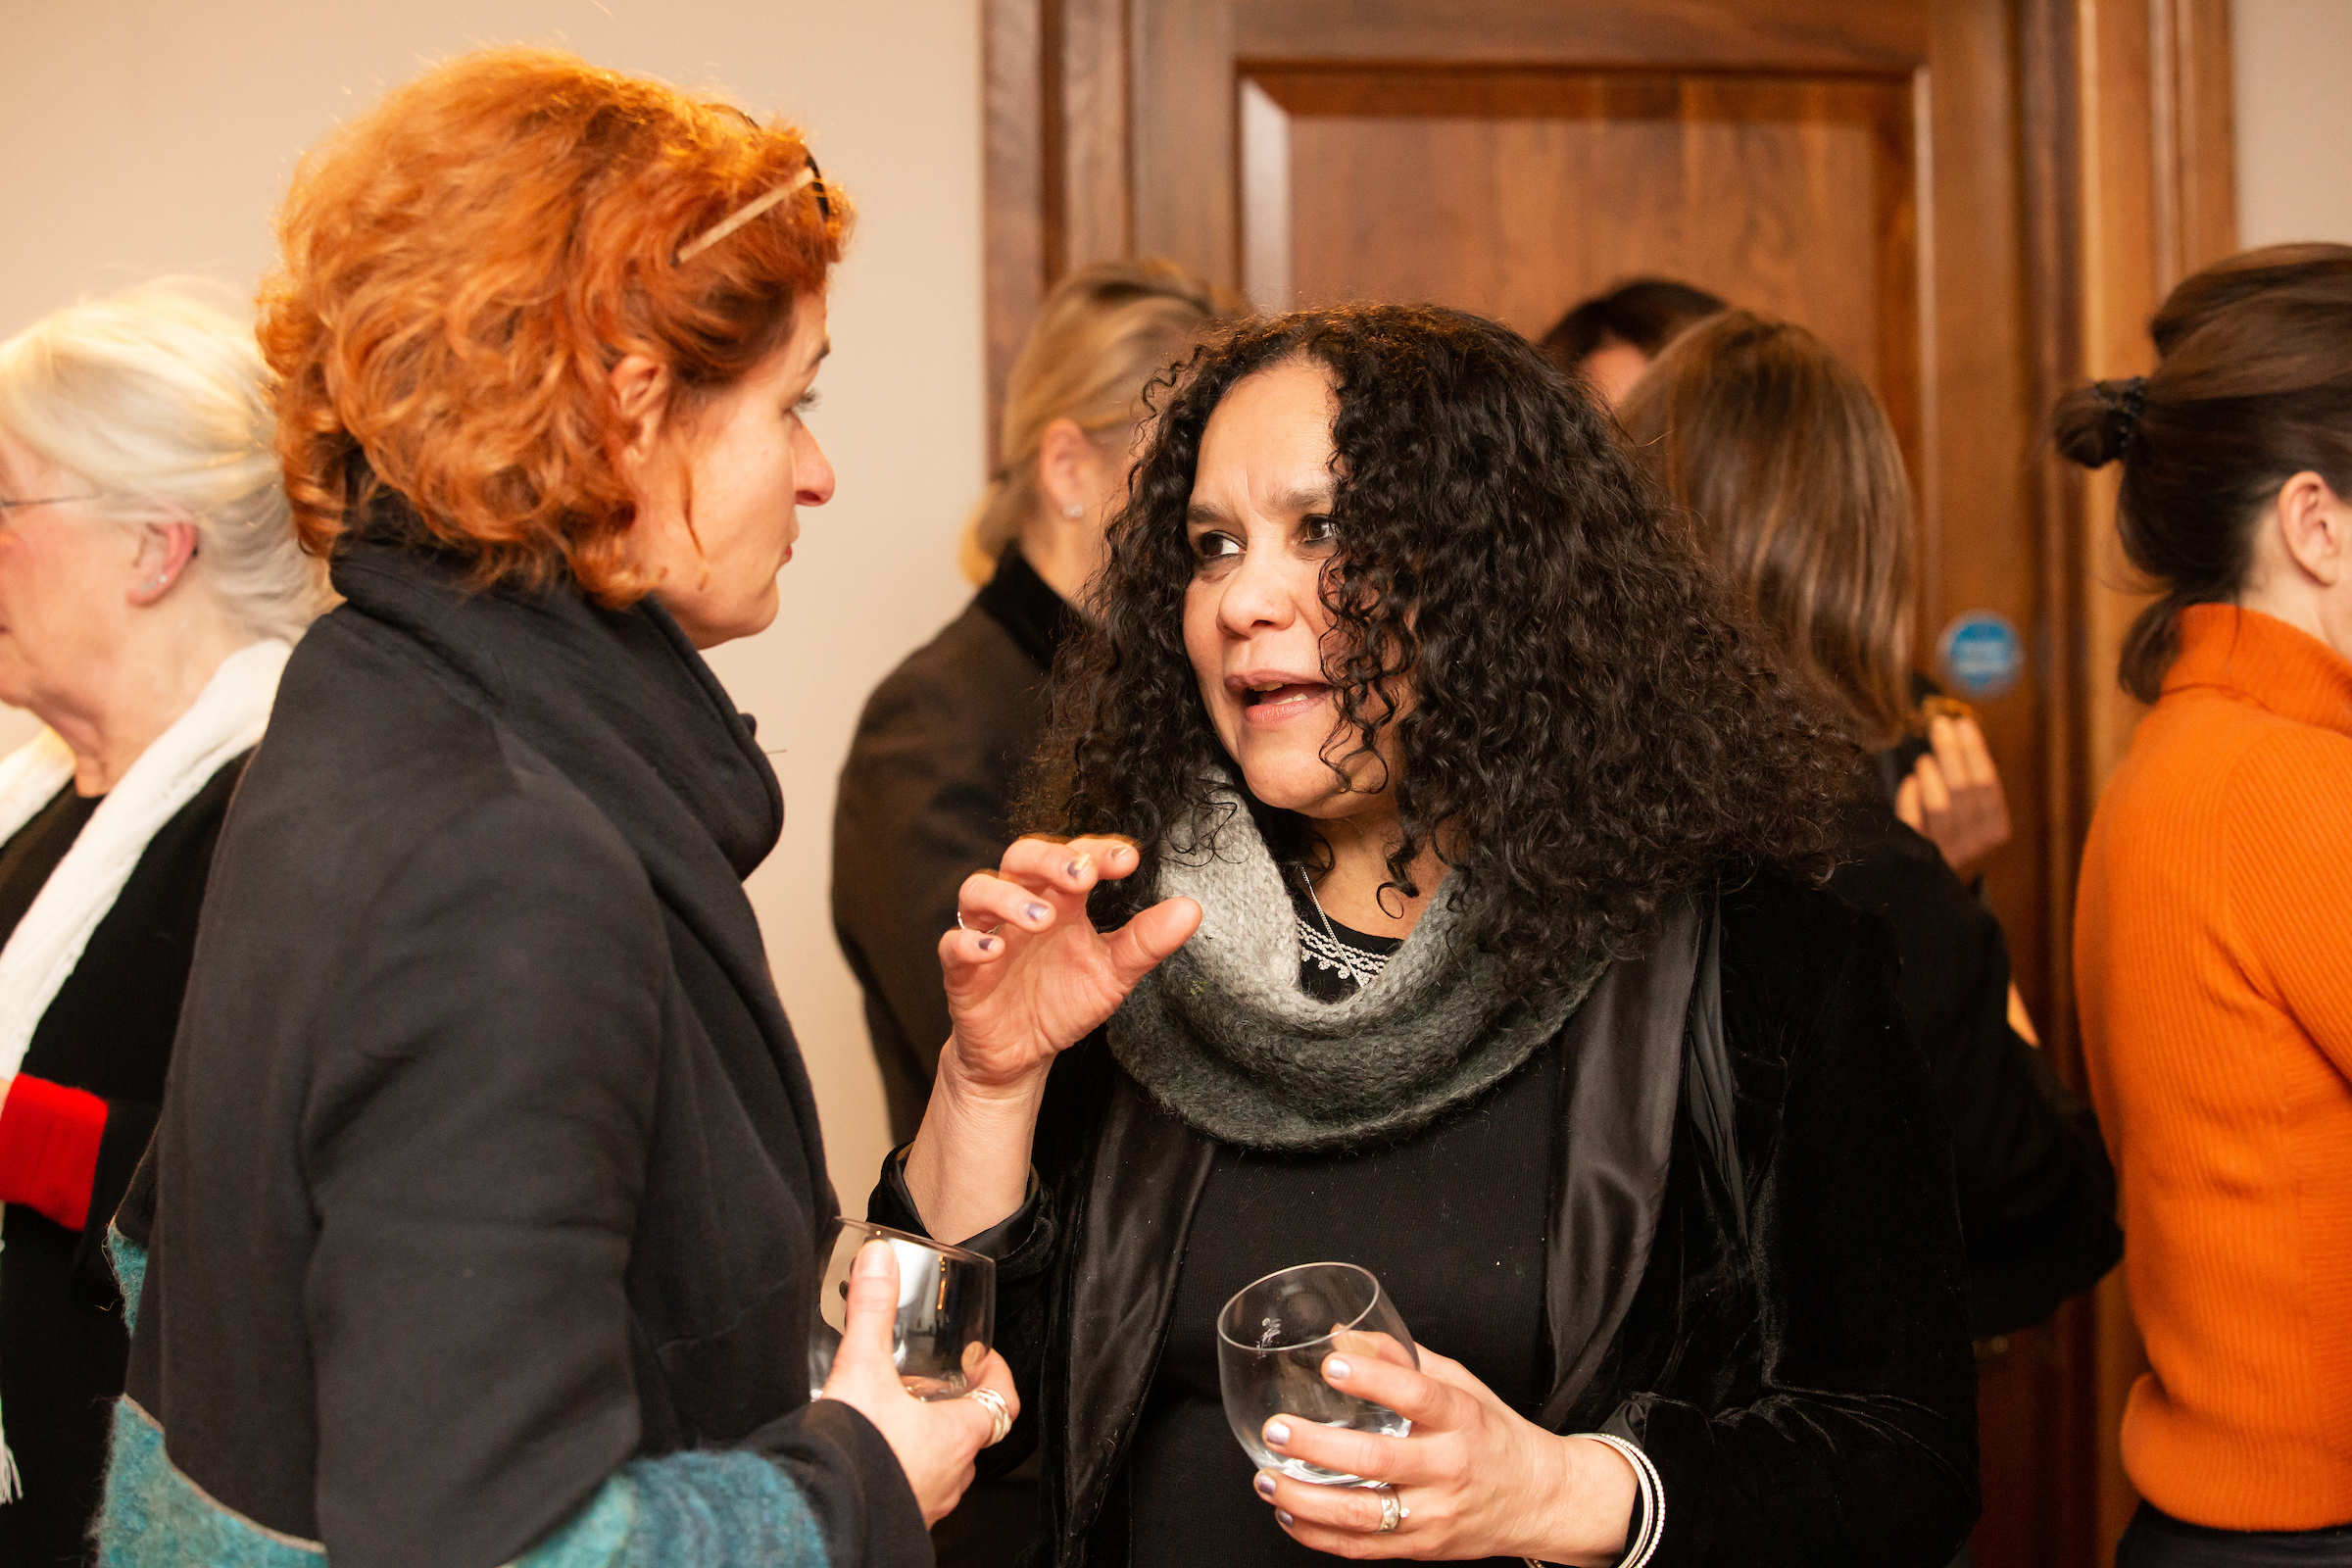 In-conversation-at-the-5050-launch.jpg